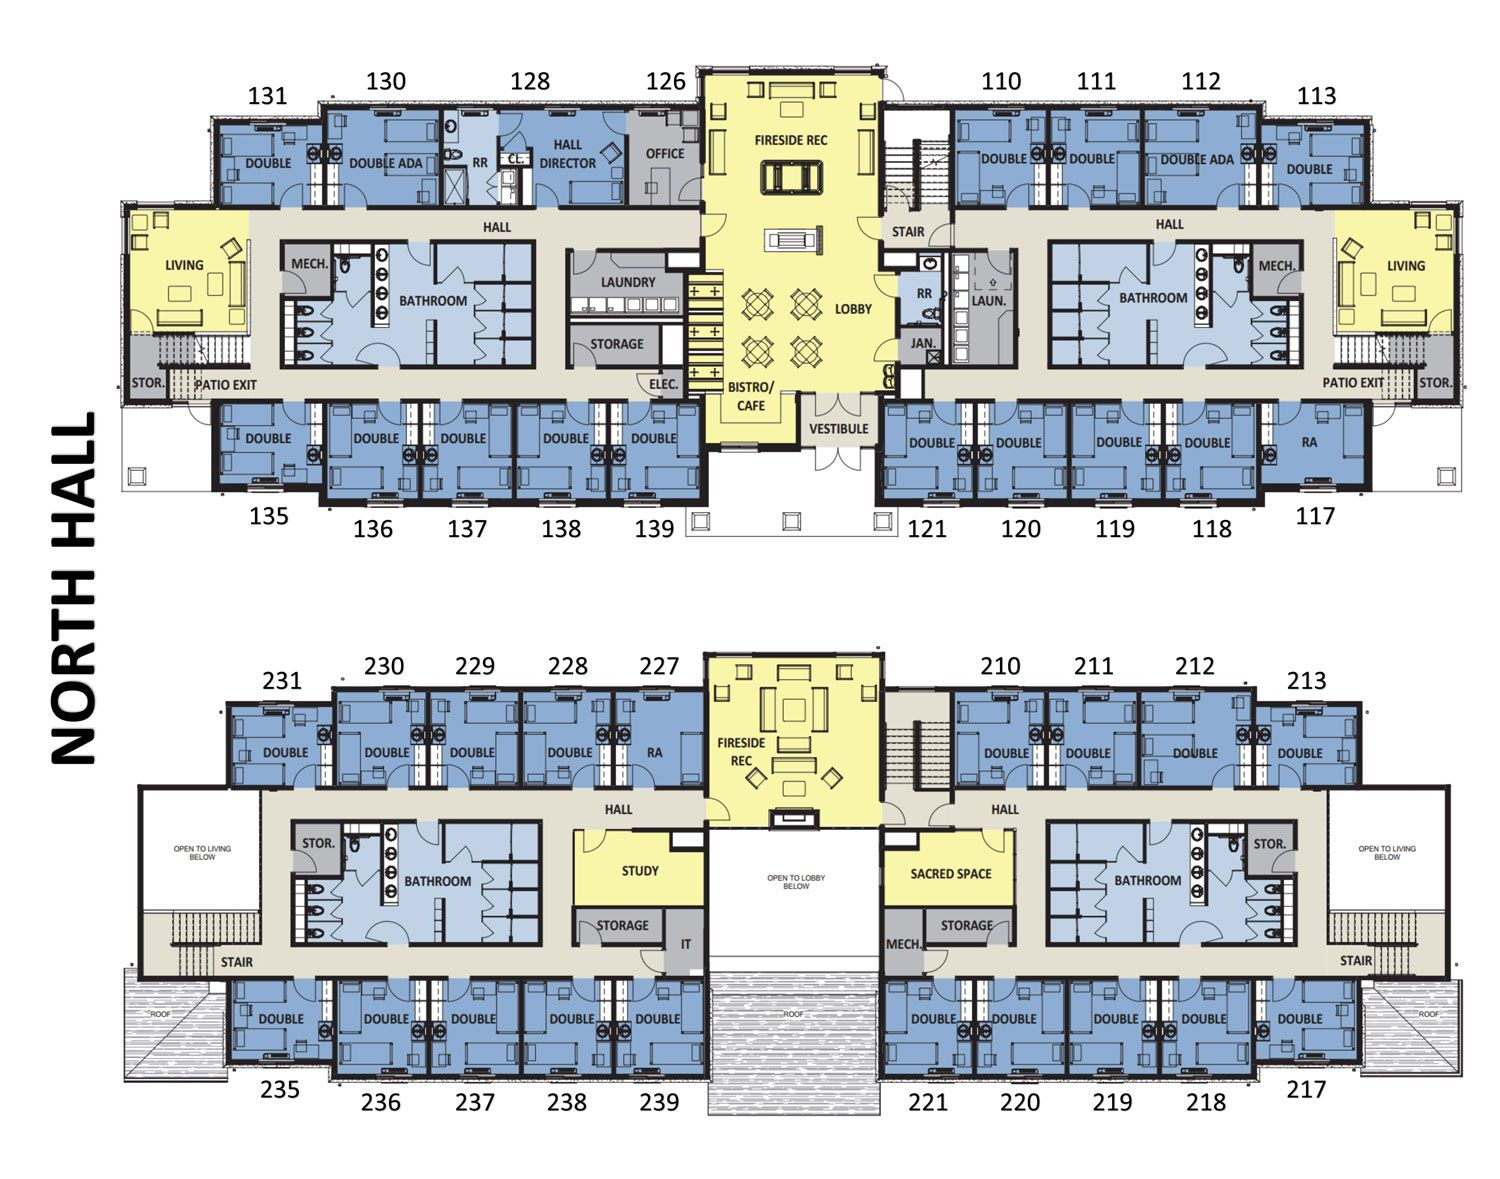 Our Residence Halls Female Residence Halls James Hall 1st Floor Floorplan 2nd Floor Floorplan 3rd Floor Floorplan Jame Hall Flooring Floor Plans Residence Hall